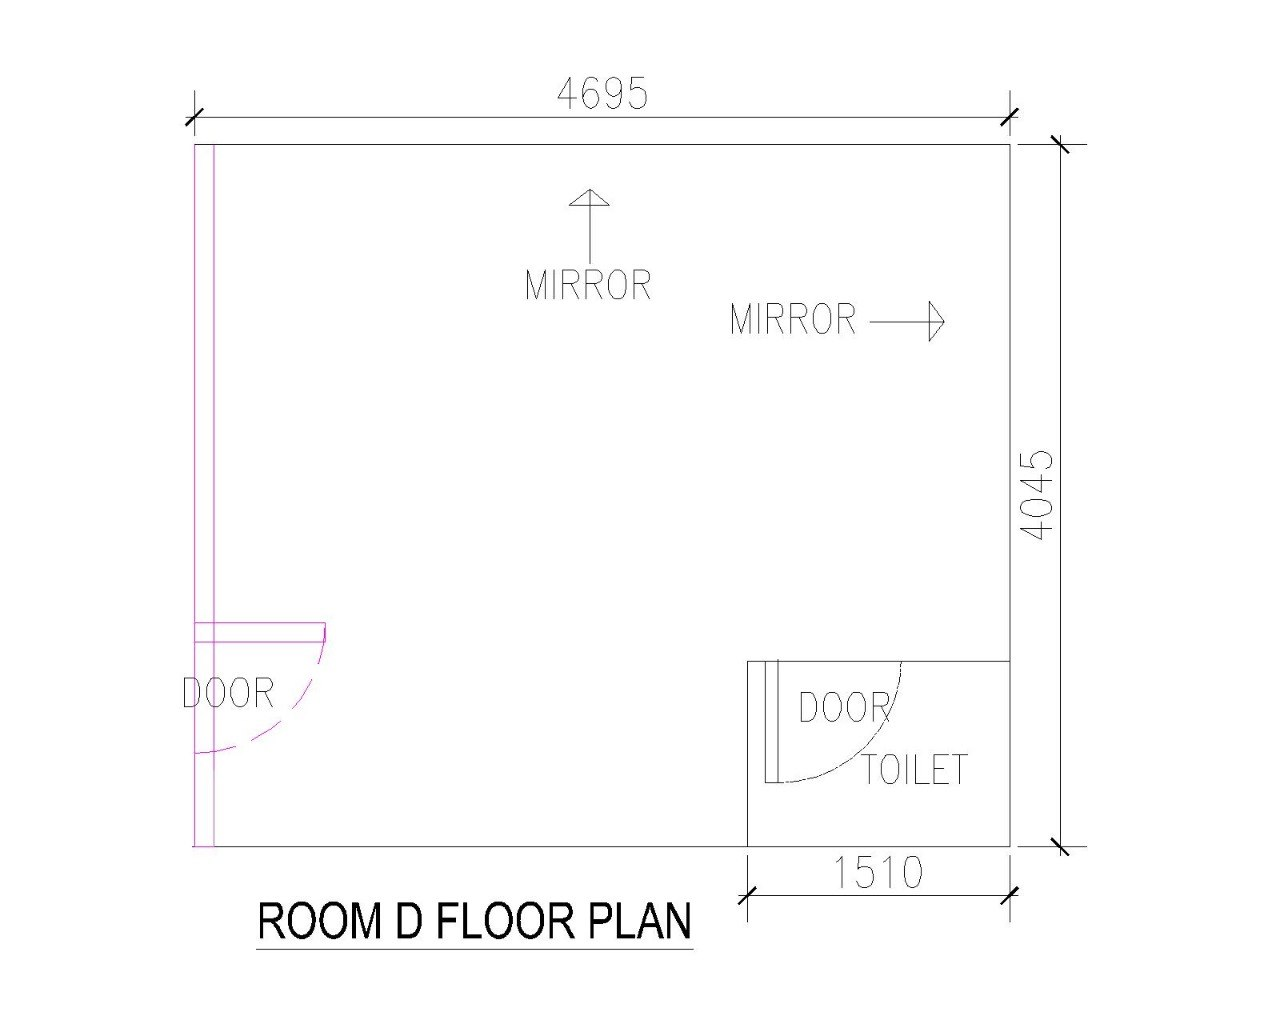 4695 MIRROR MIRROR LO D00 OILET ,1510 ROOM D FLOOR PLAN  text